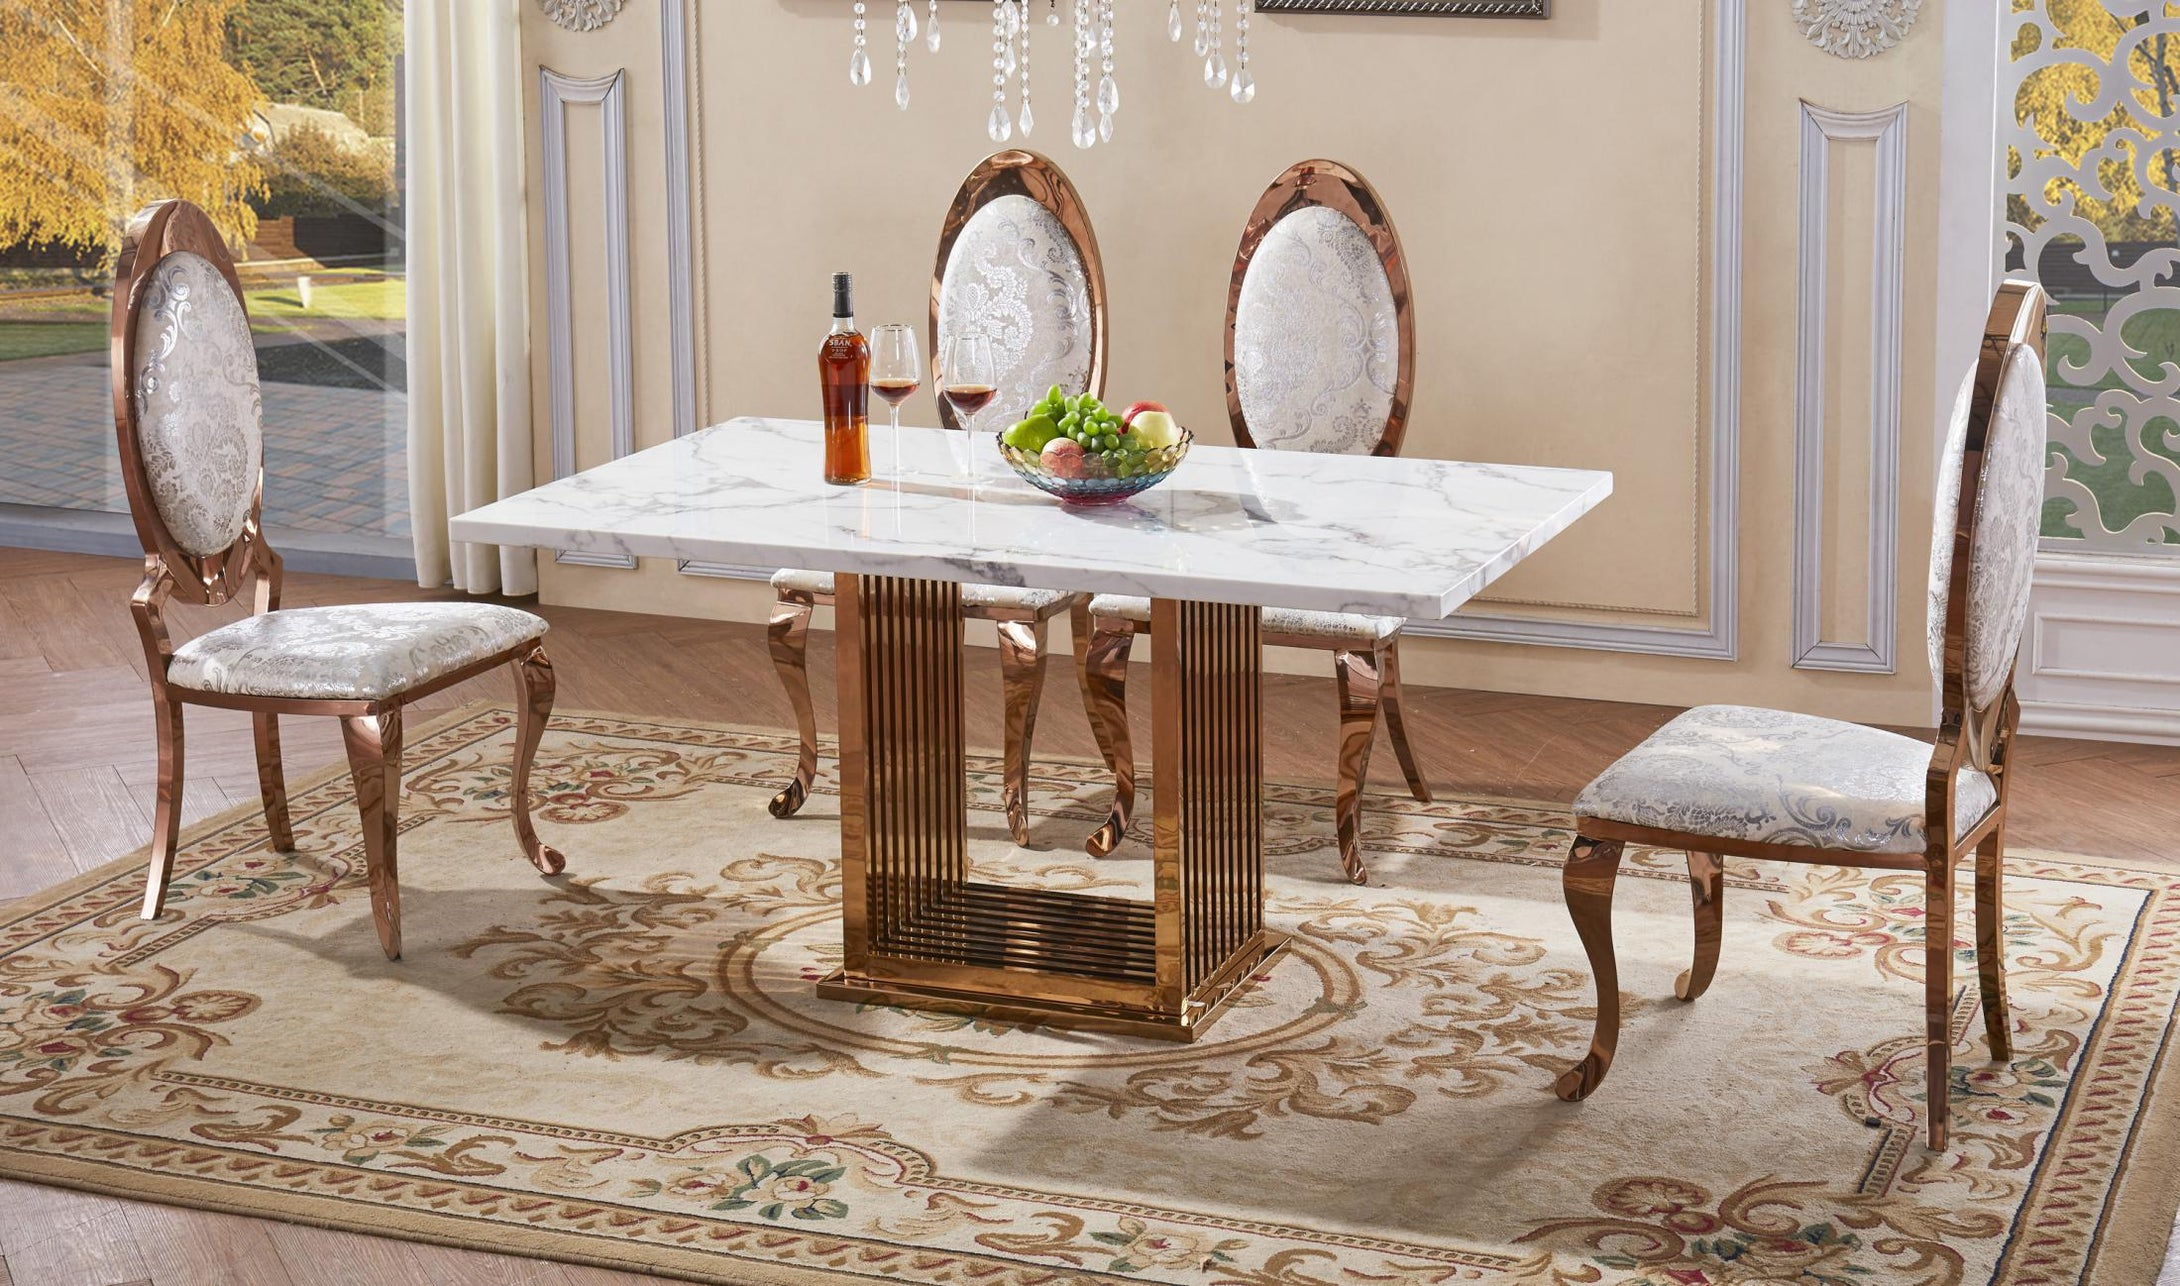 Tuscany Marble Dining Table with Stainless Steel Base